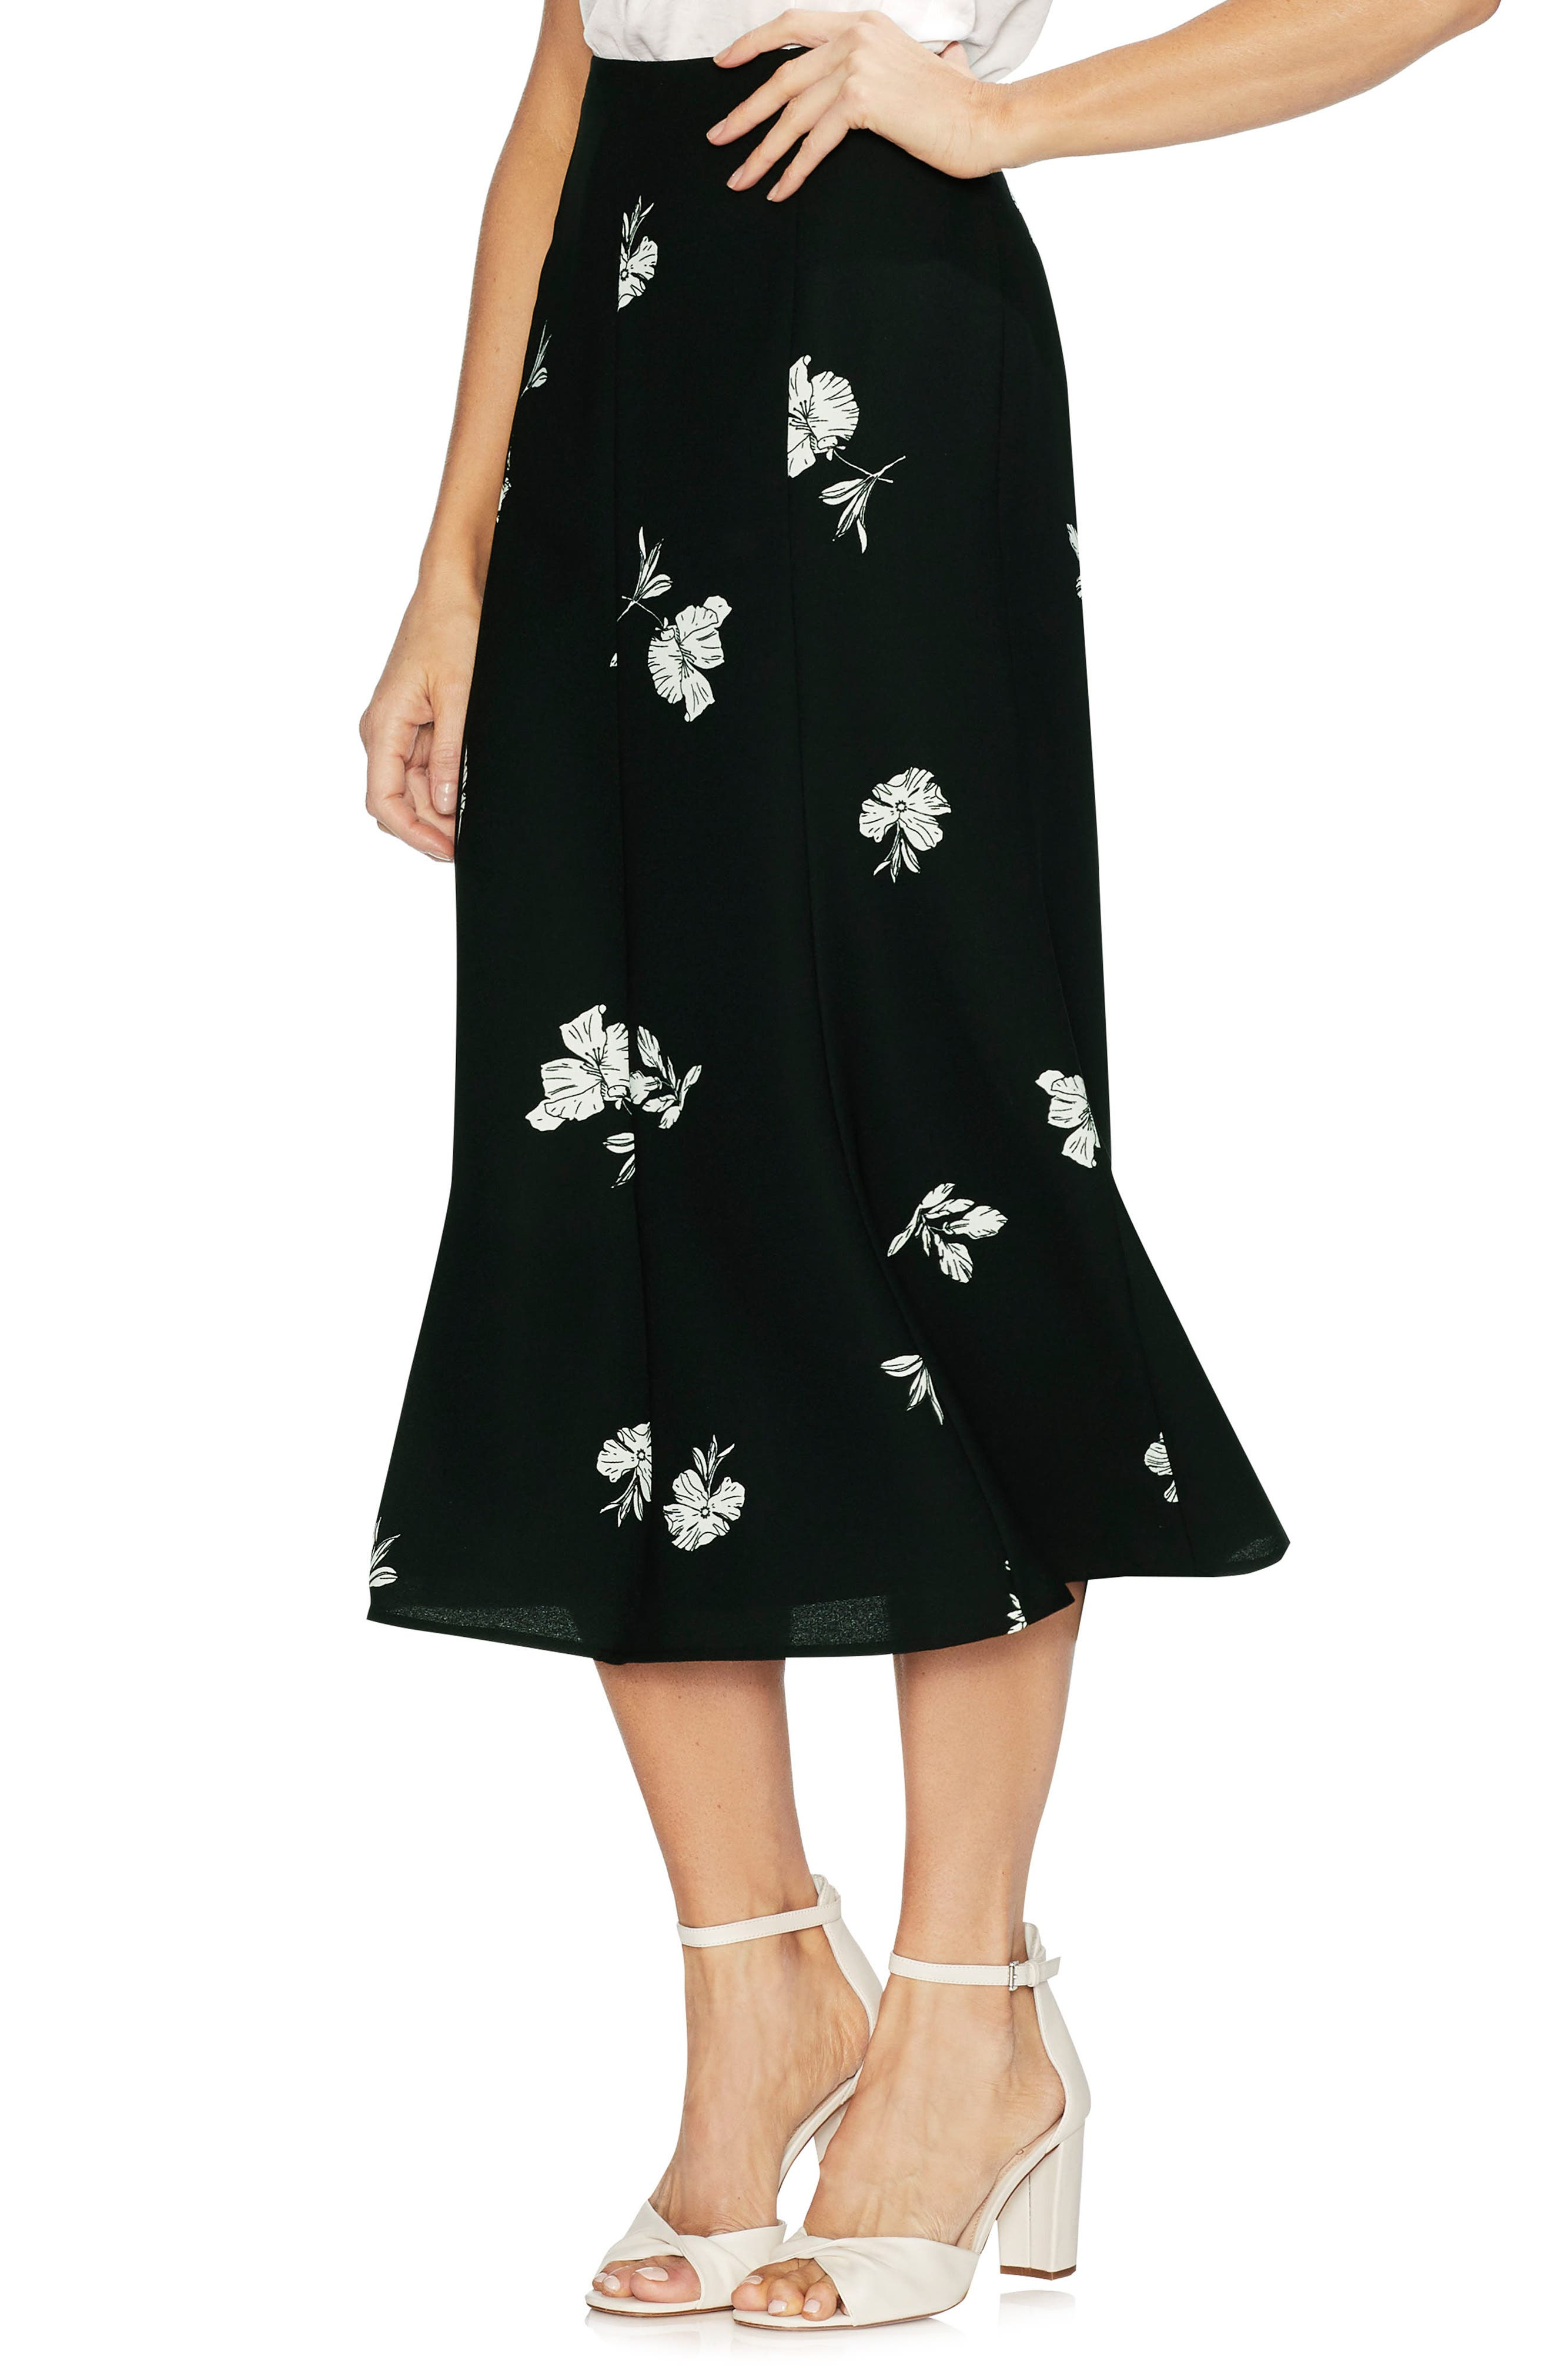 VINCE CAMUTO Floral Print Skirt, Main, color, 006